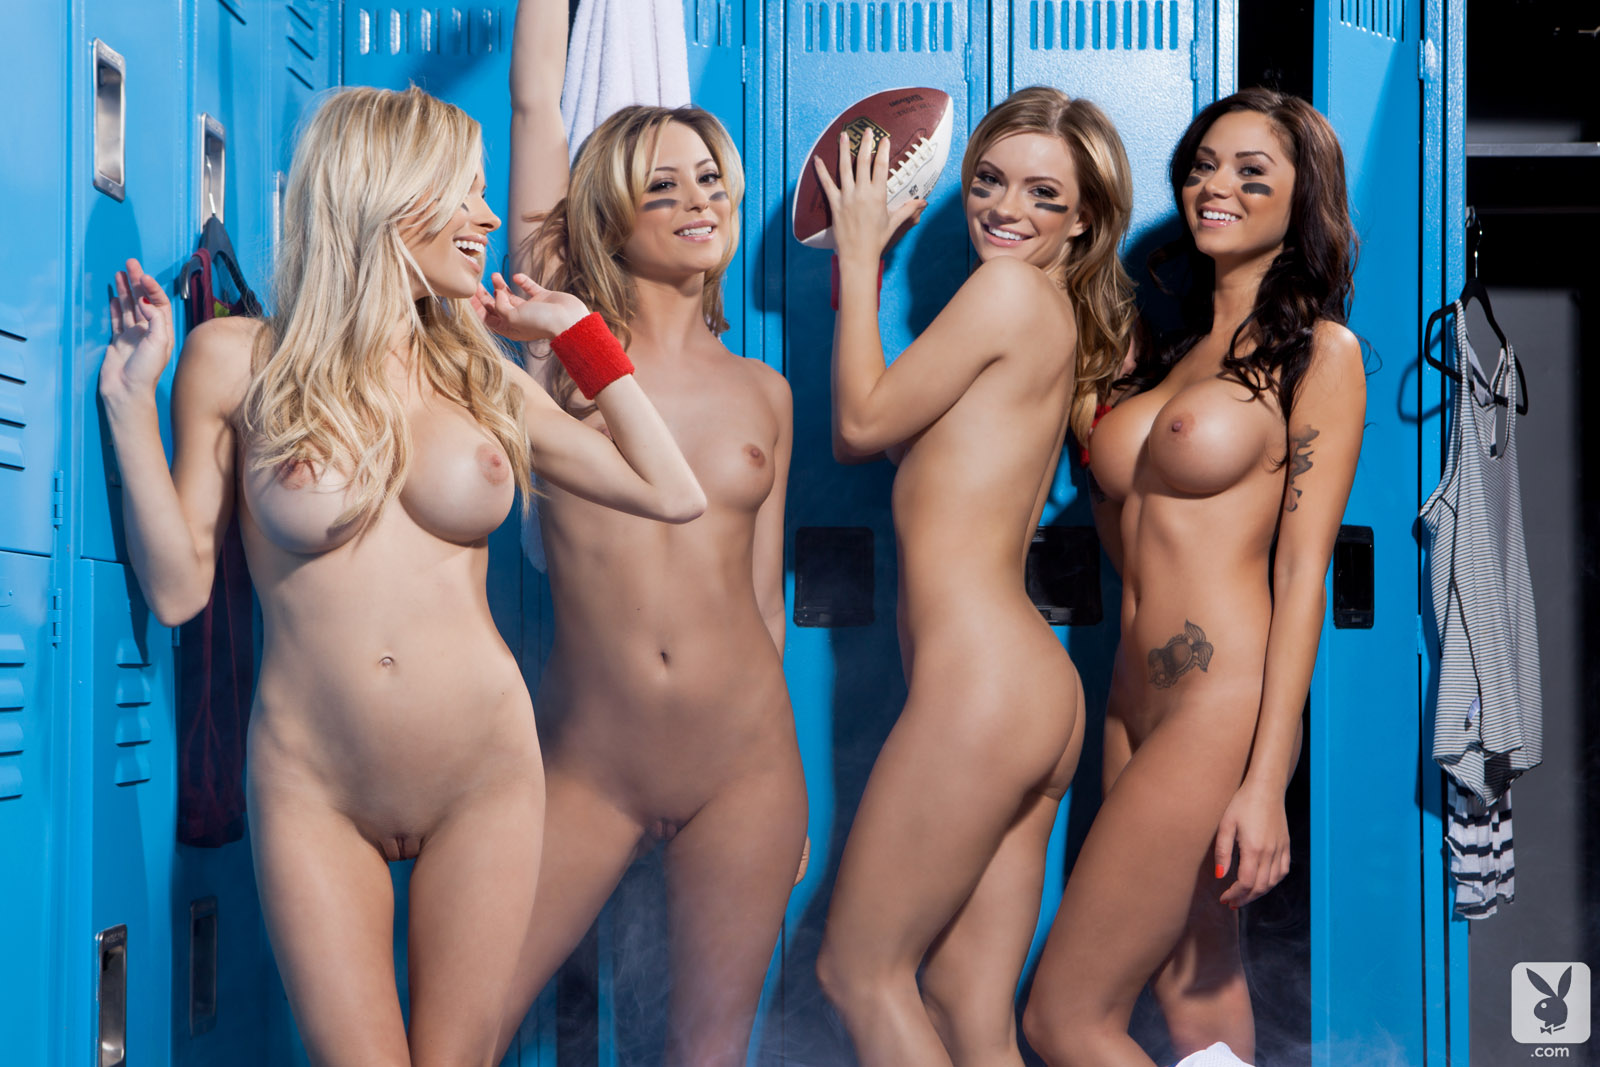 Vanna white nude high society magazine